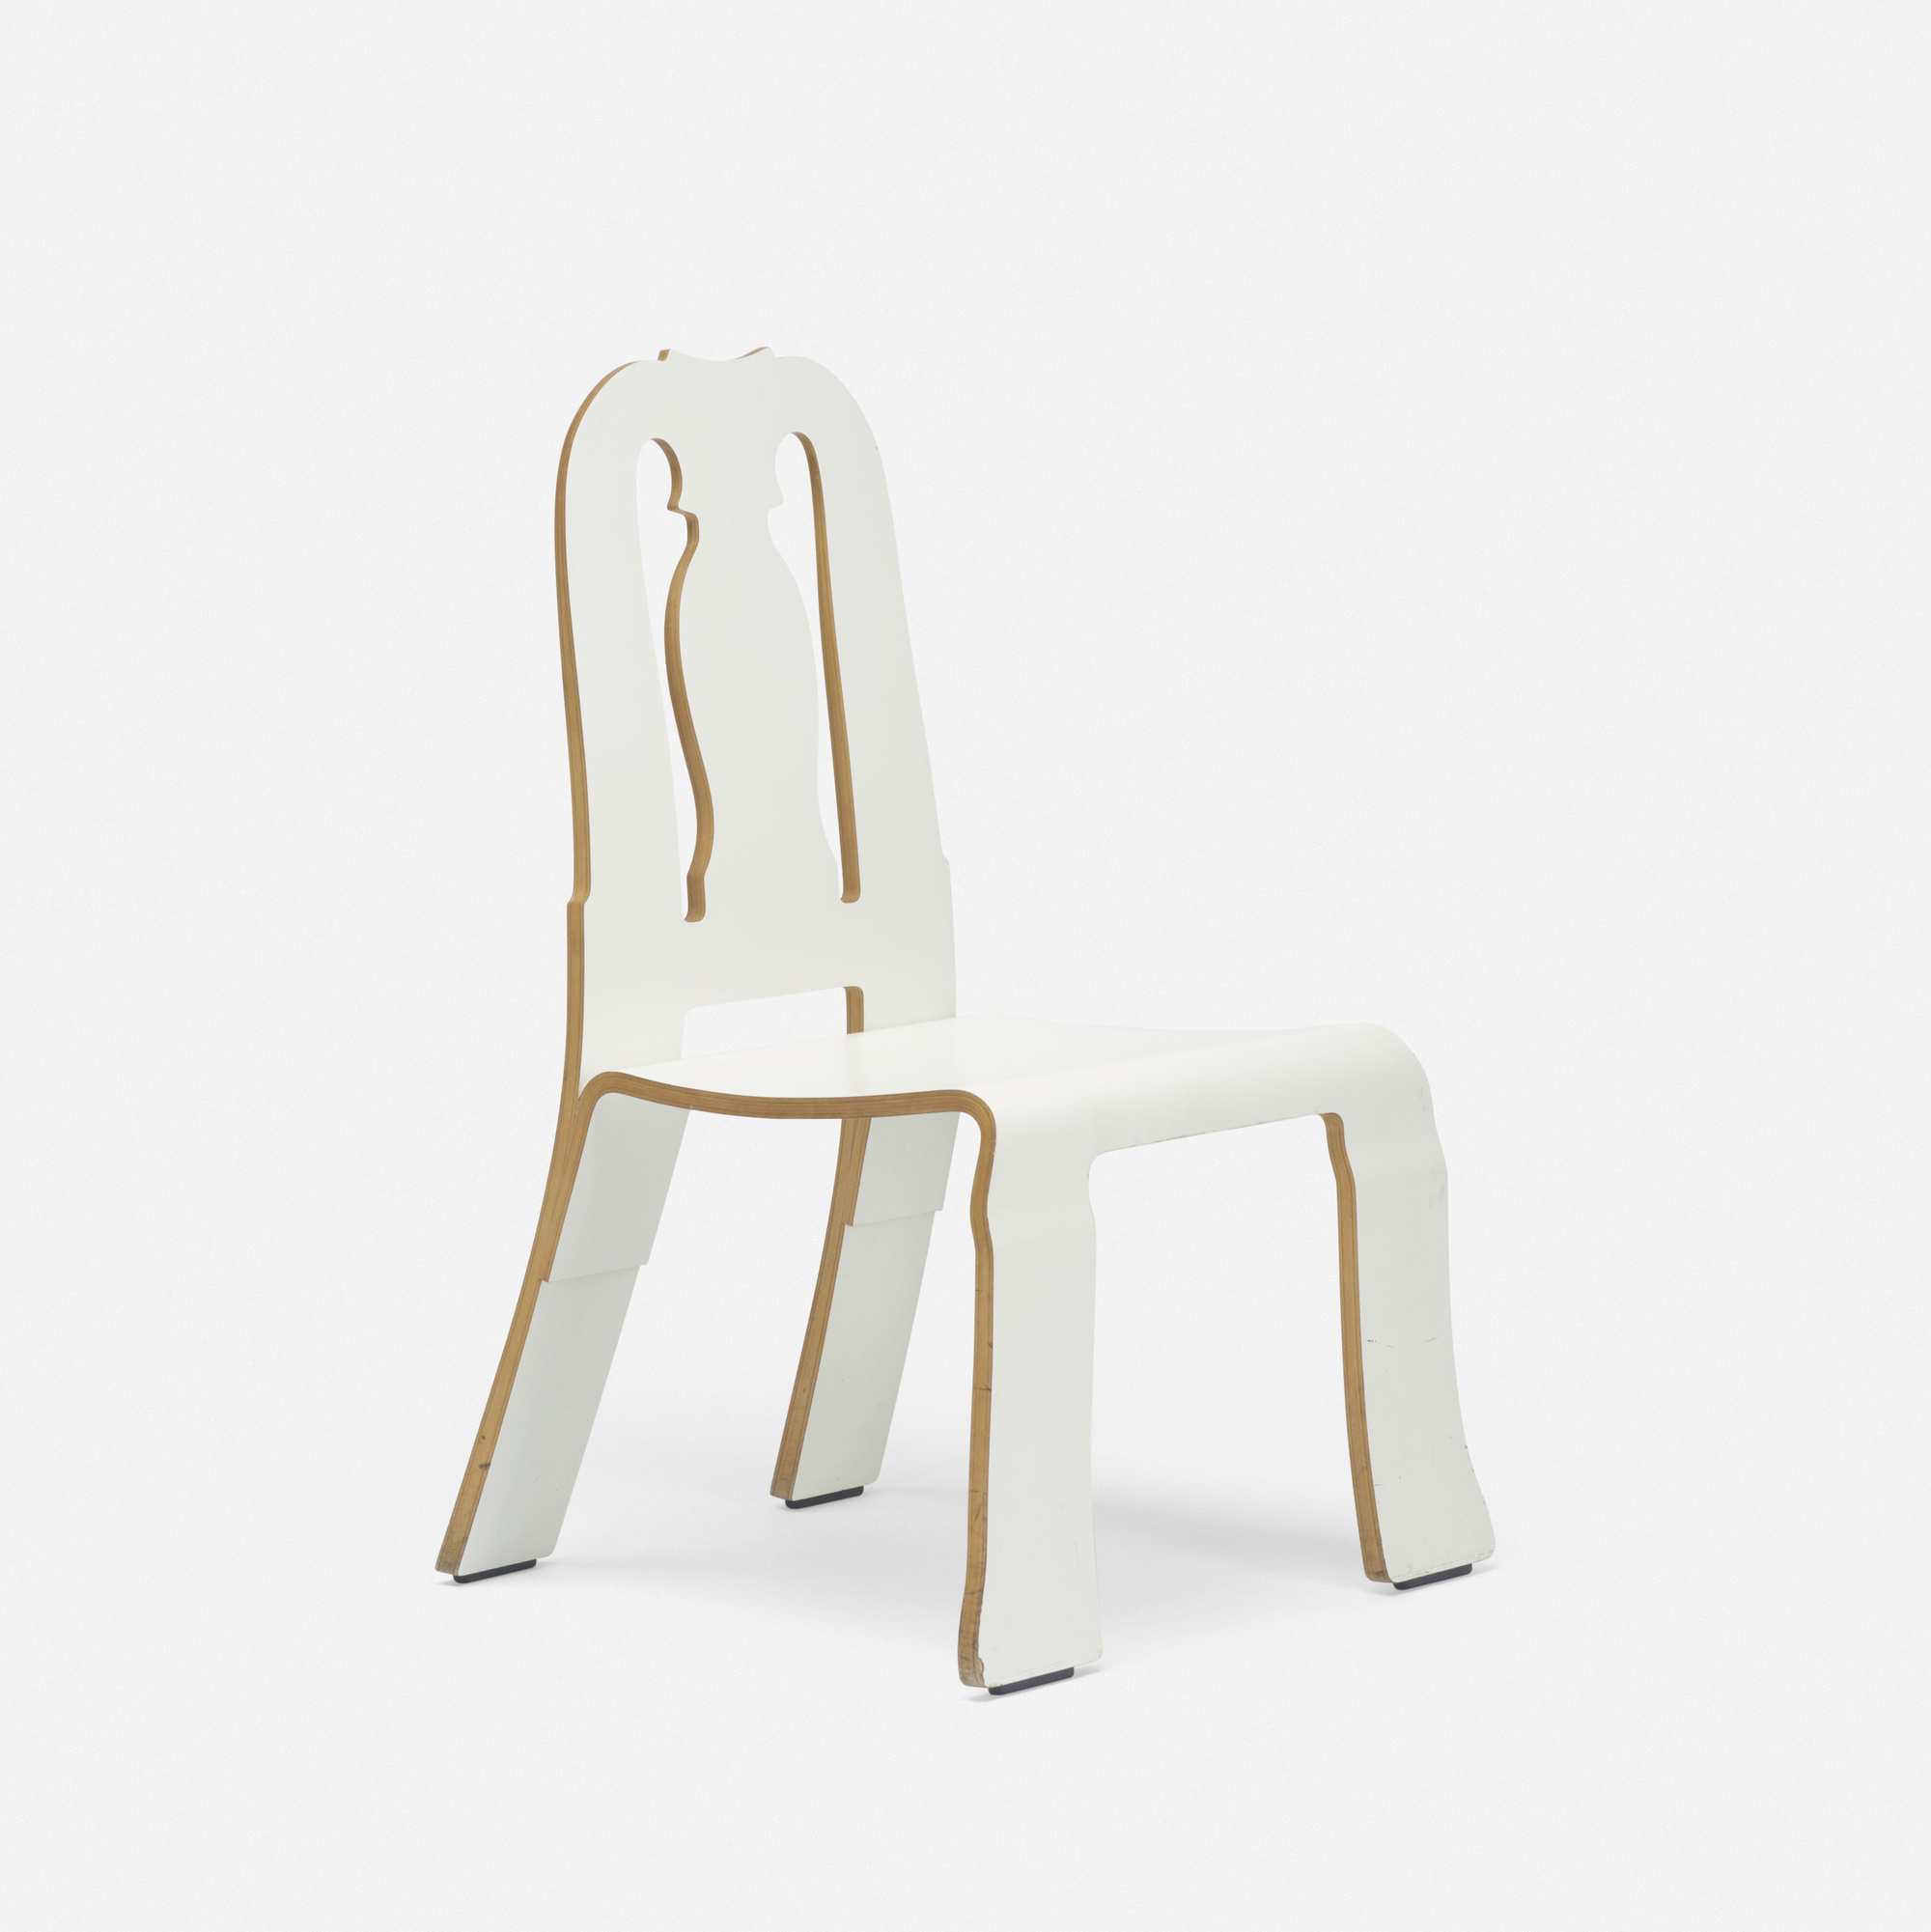 405: Robert Venturi / Queen Anne chair (2 of 2)